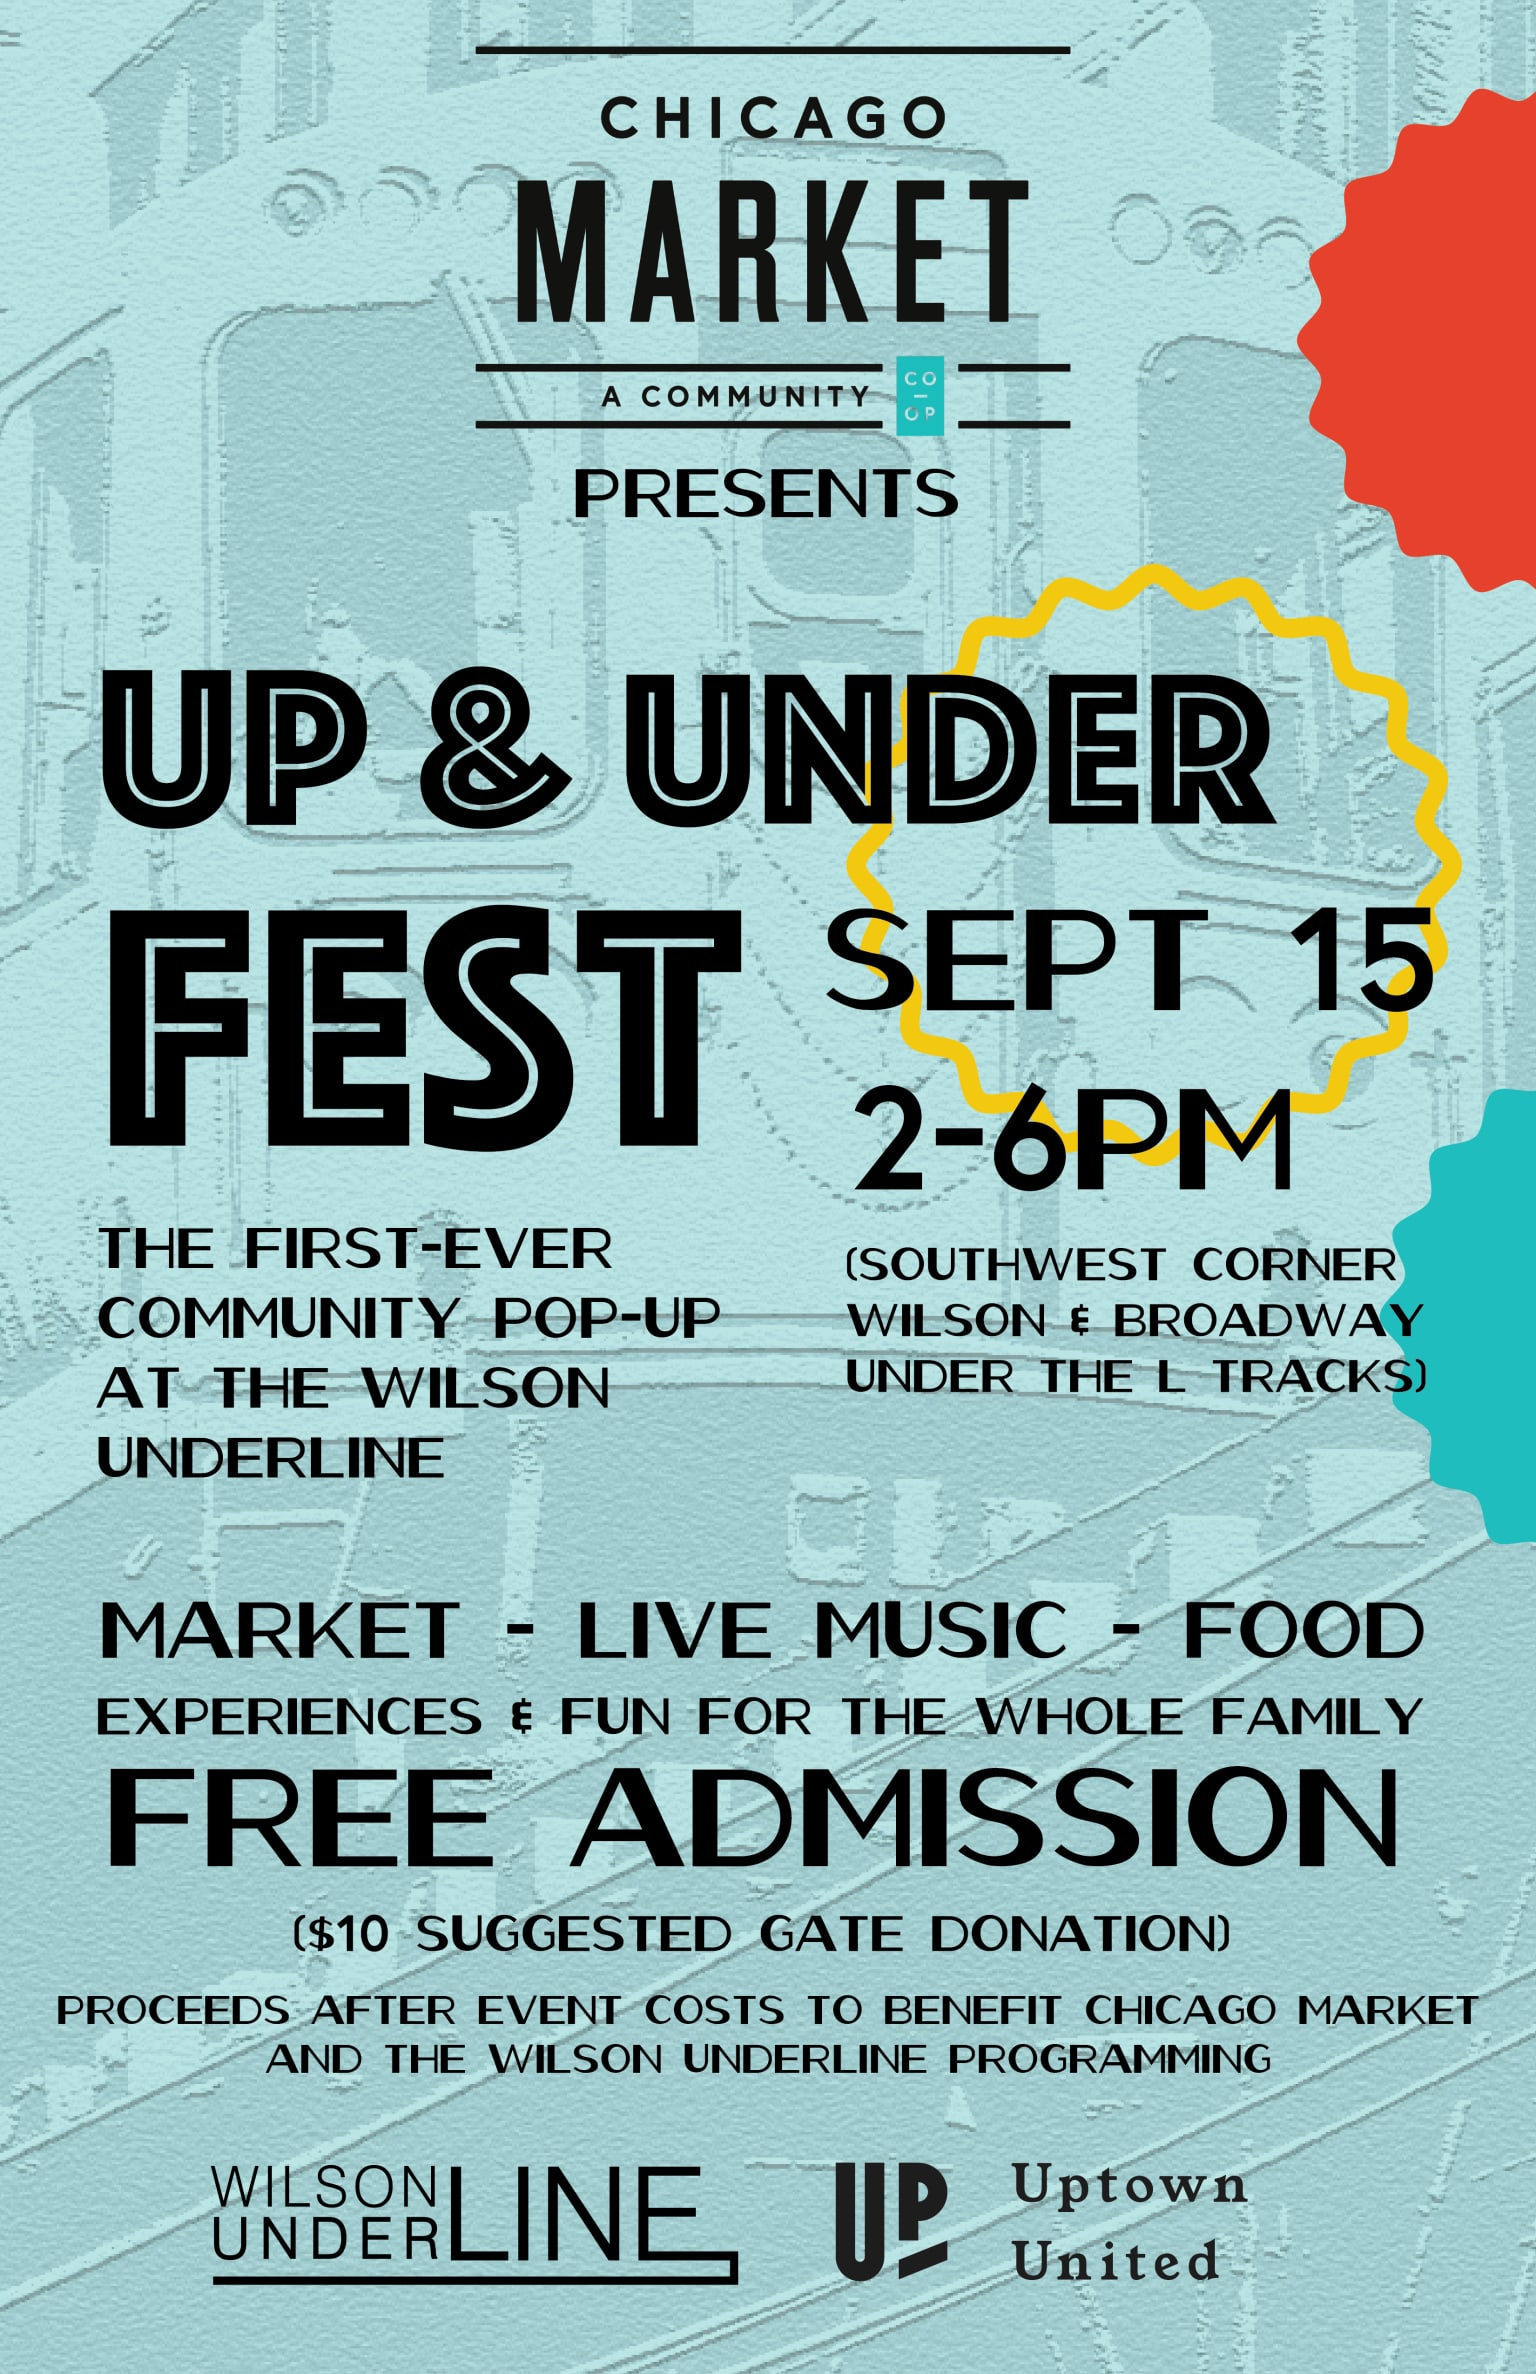 Up and Under Fest